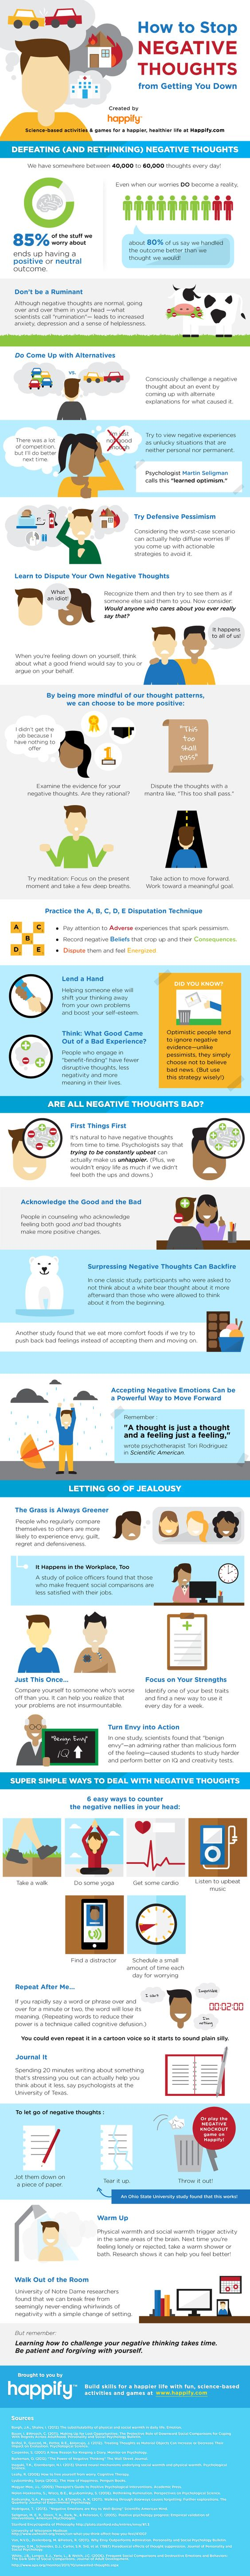 Negative Thoughts infographic